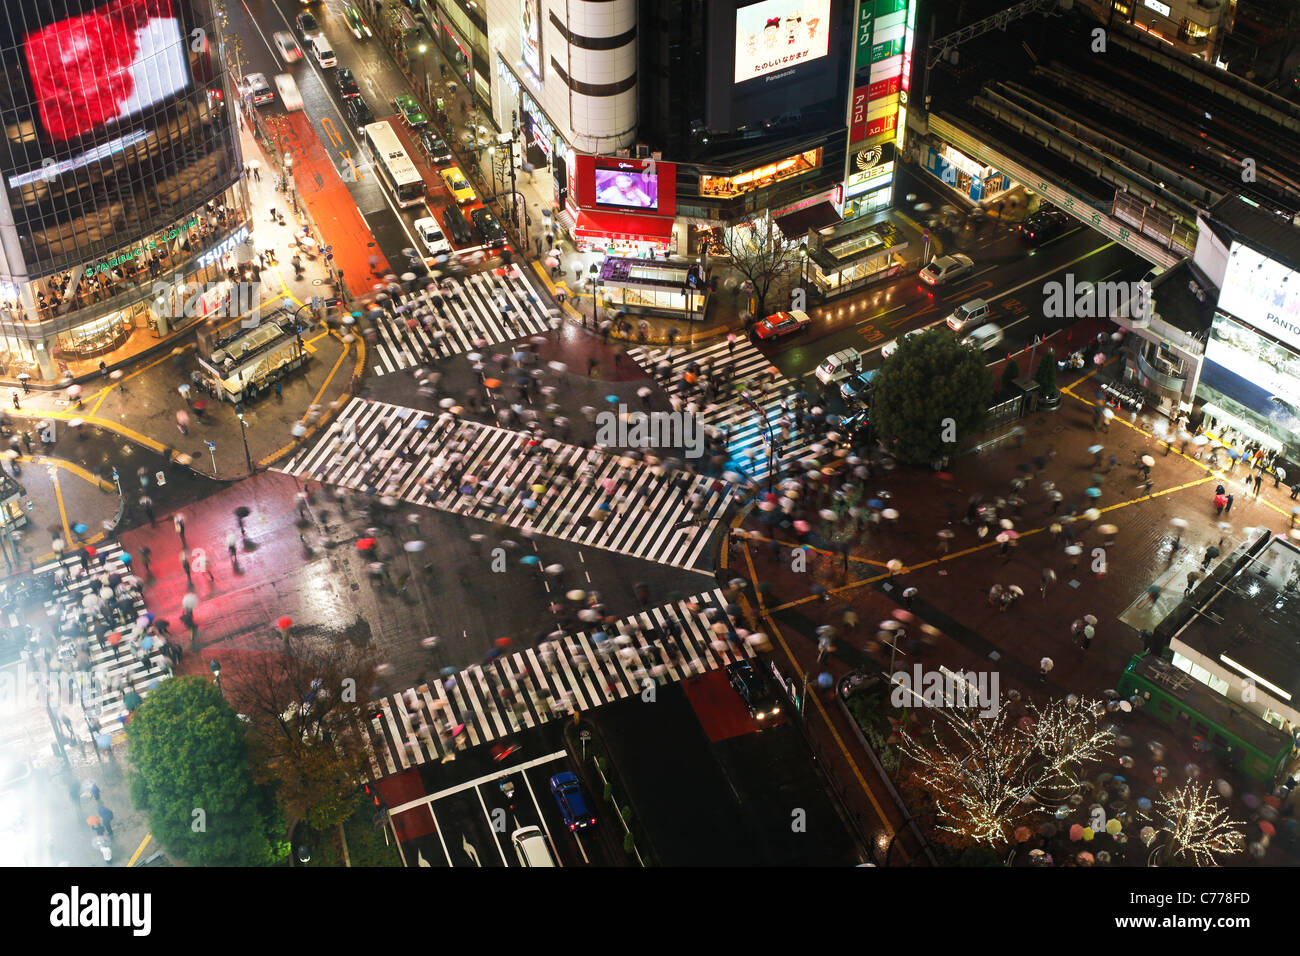 Asia, Japan, Tokyo, Shibuya, Shibuya Crossing - crowds of people crossing the famous crosswalks - Stock Image